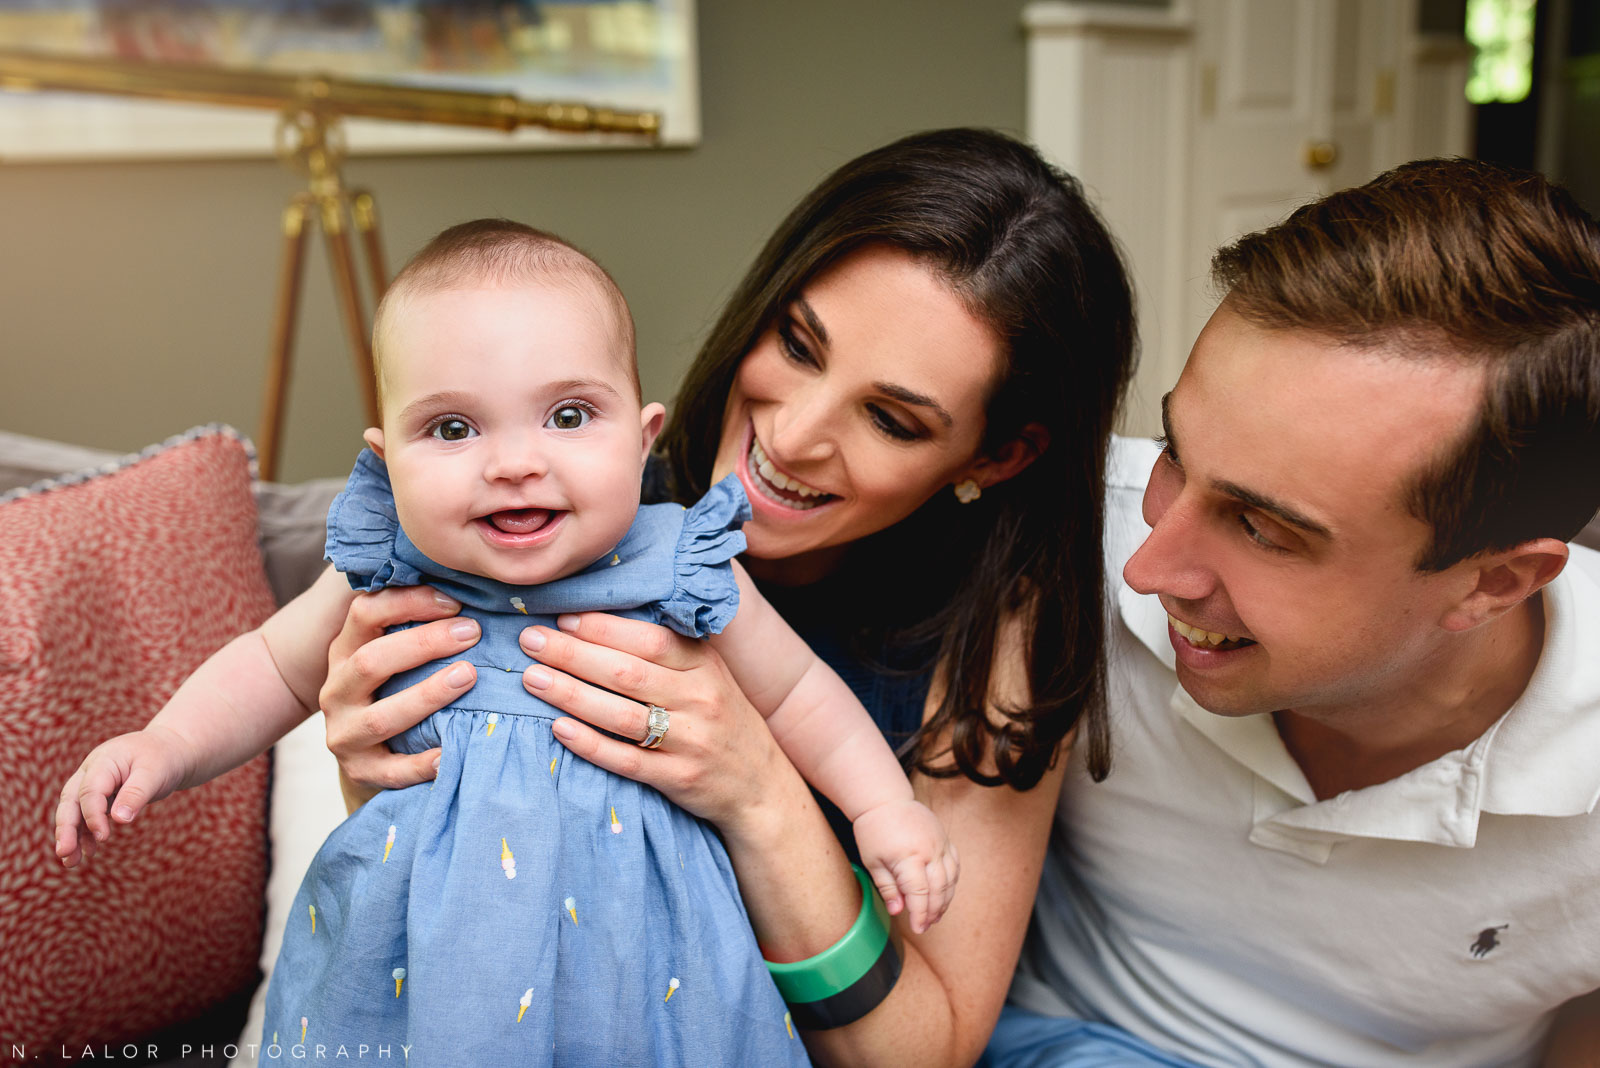 Casual family portrait. In-home family session with N. Lalor Photography in New Canaan, CT.